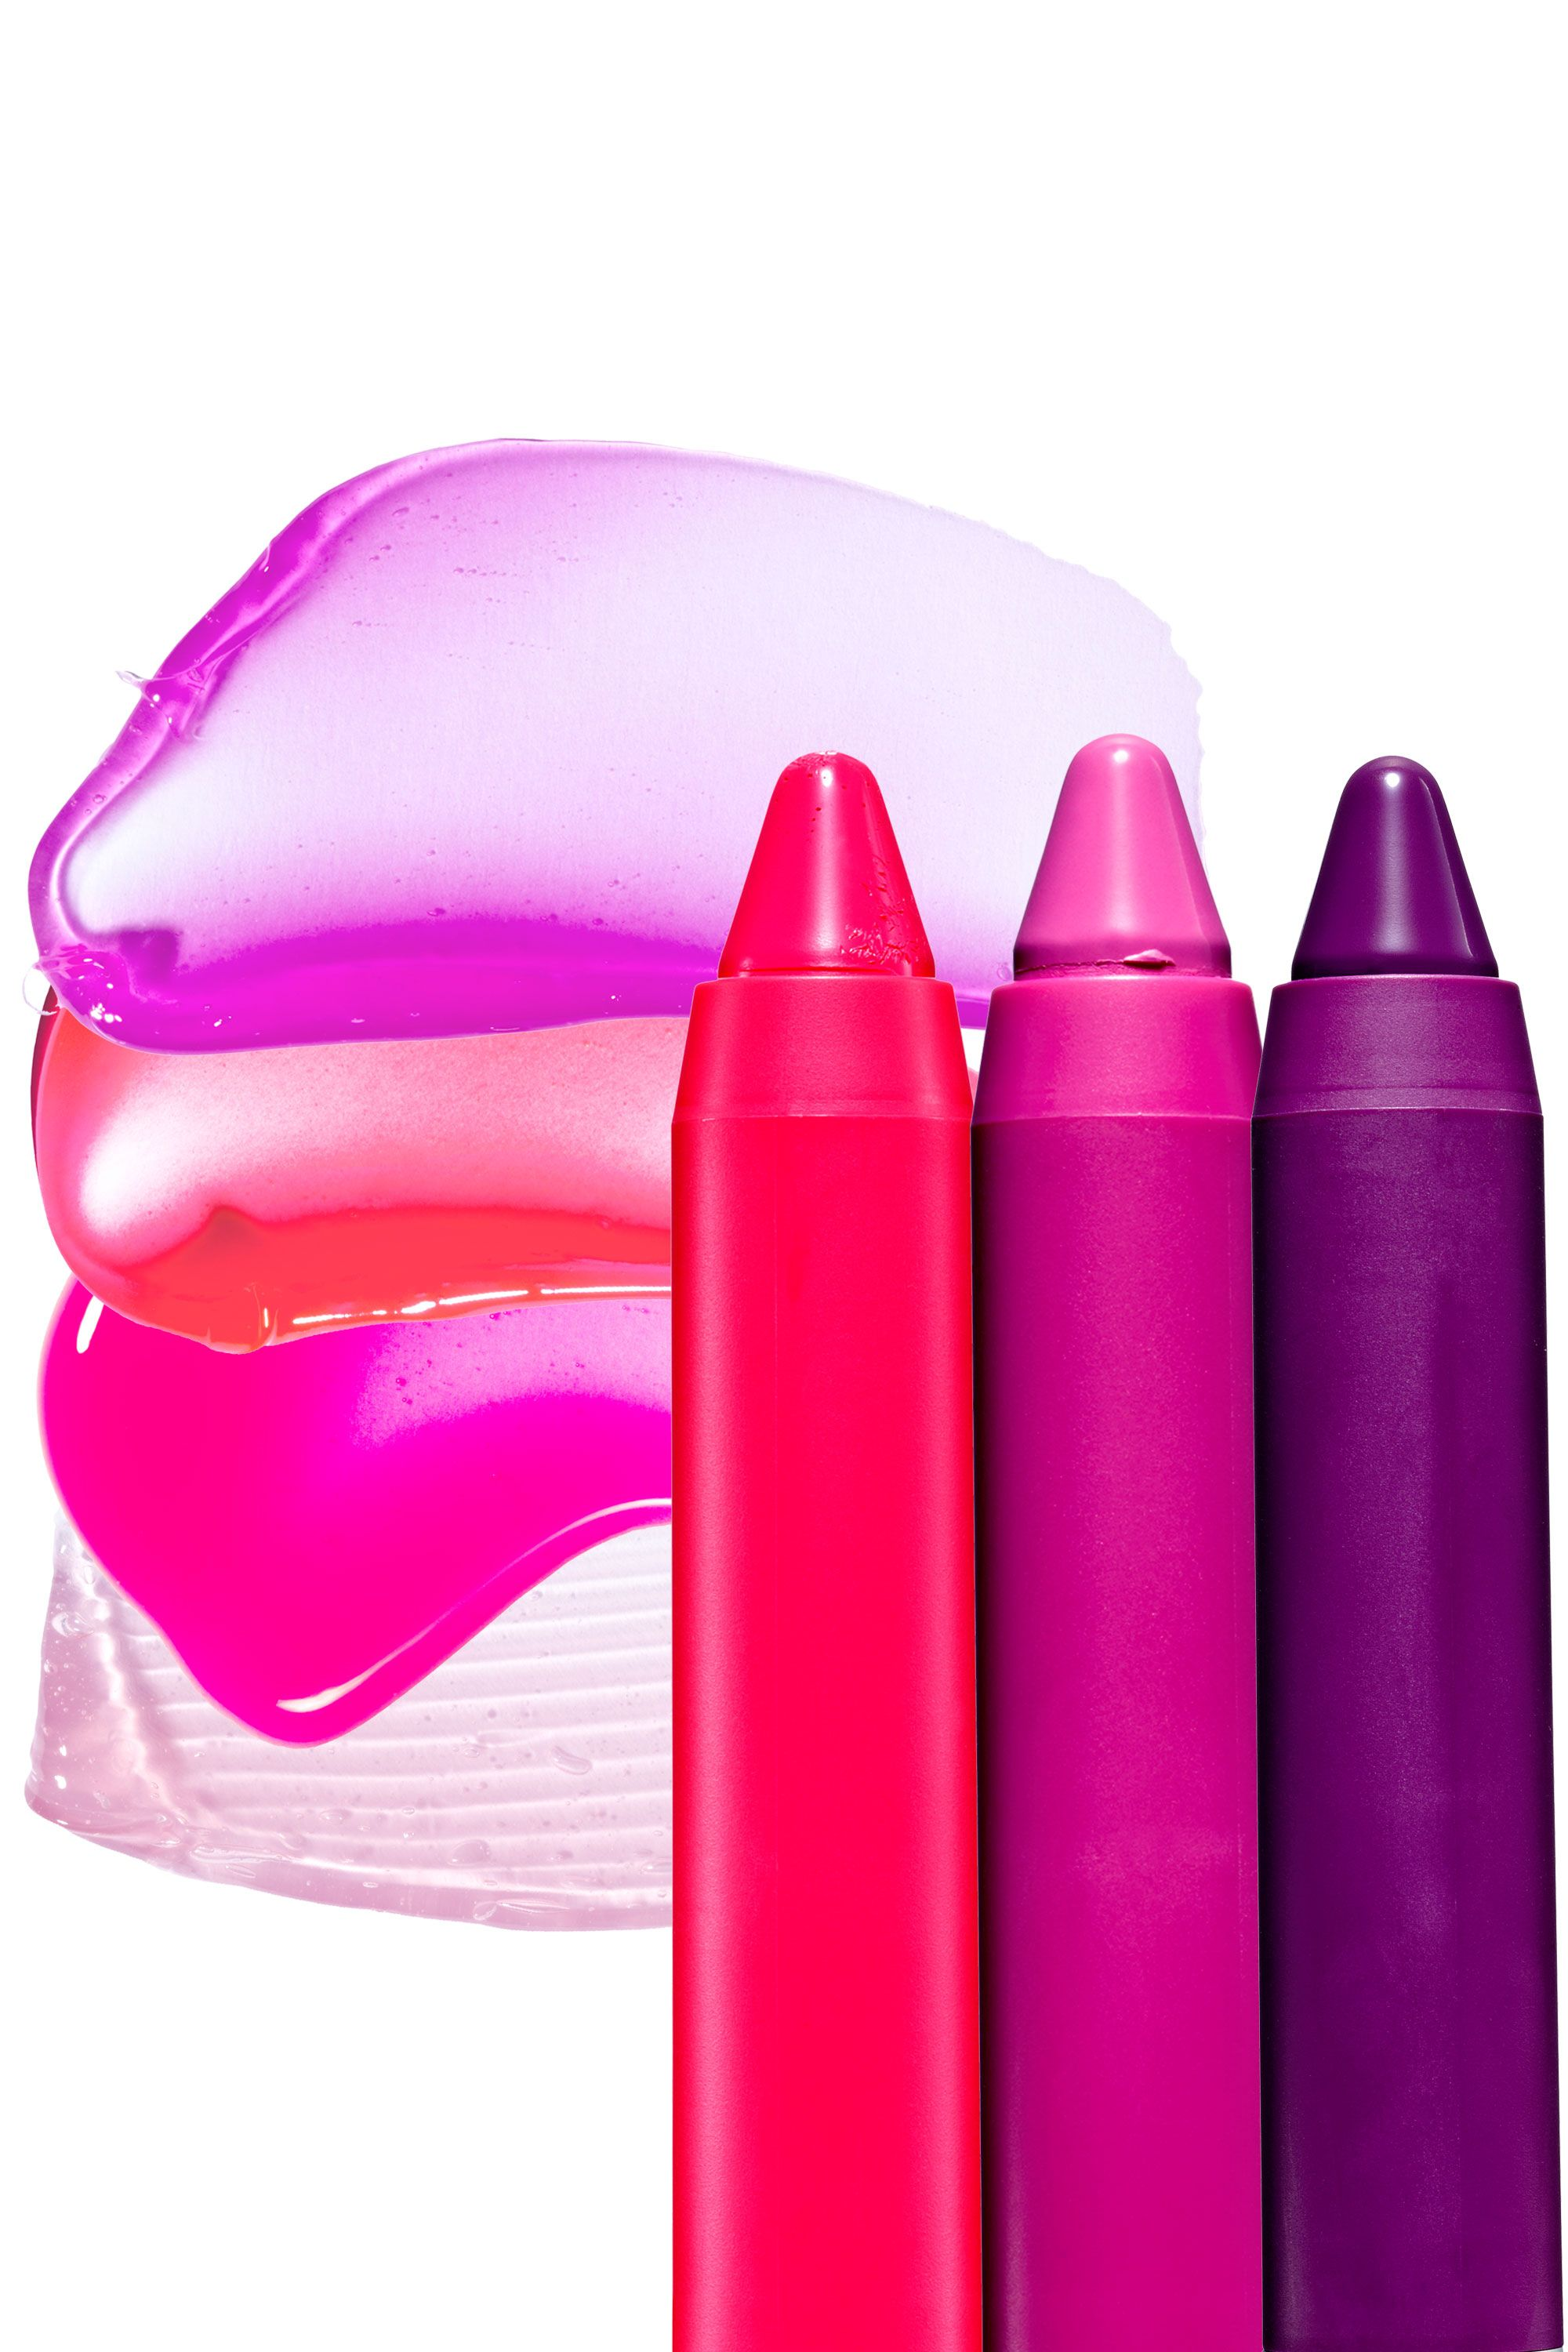 Summers Prettiest Pink Products pics